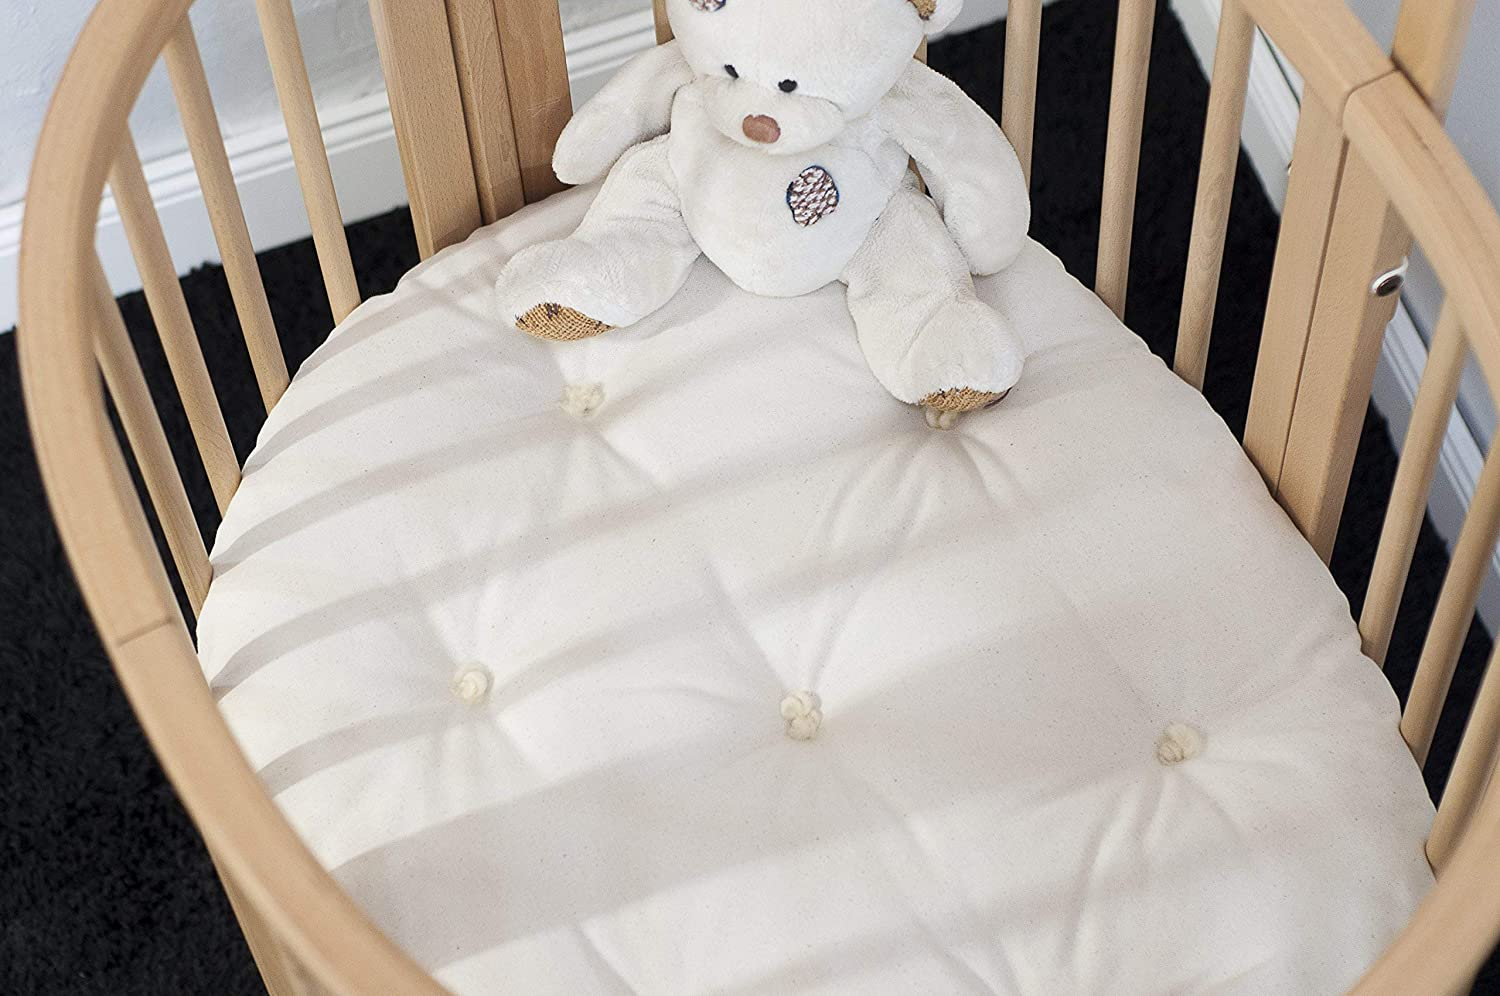 Home of Wool/Handmade Wool-Filled Mattress/STOKKE Sleepi Junior, Bed or Mini Size/Cover - Cotton, Linen or Lambswool/Organic Wool Filling/Non-toxic Nursery Bedding/Custom Sizes Available